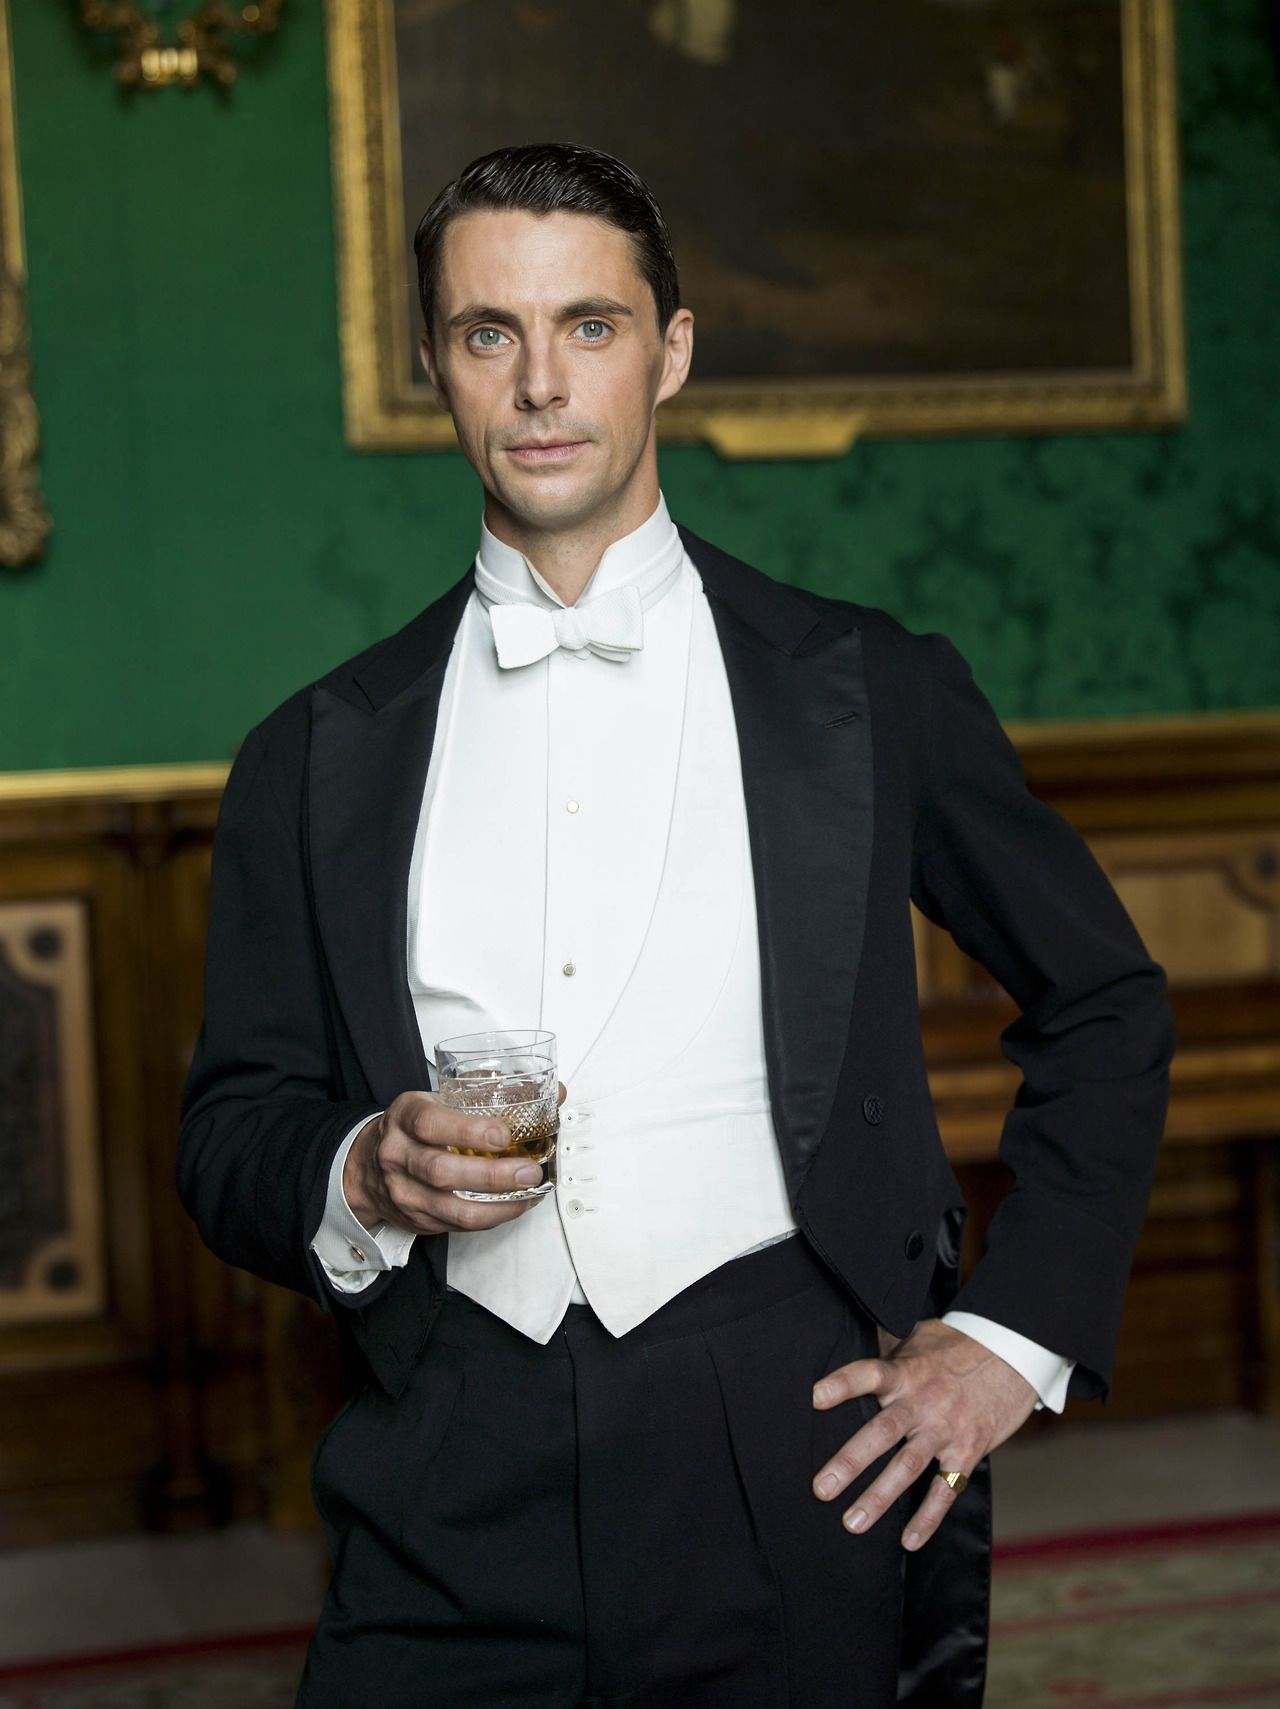 Matthew Goode In Downton Abbey Downton Matthew Goode Downton